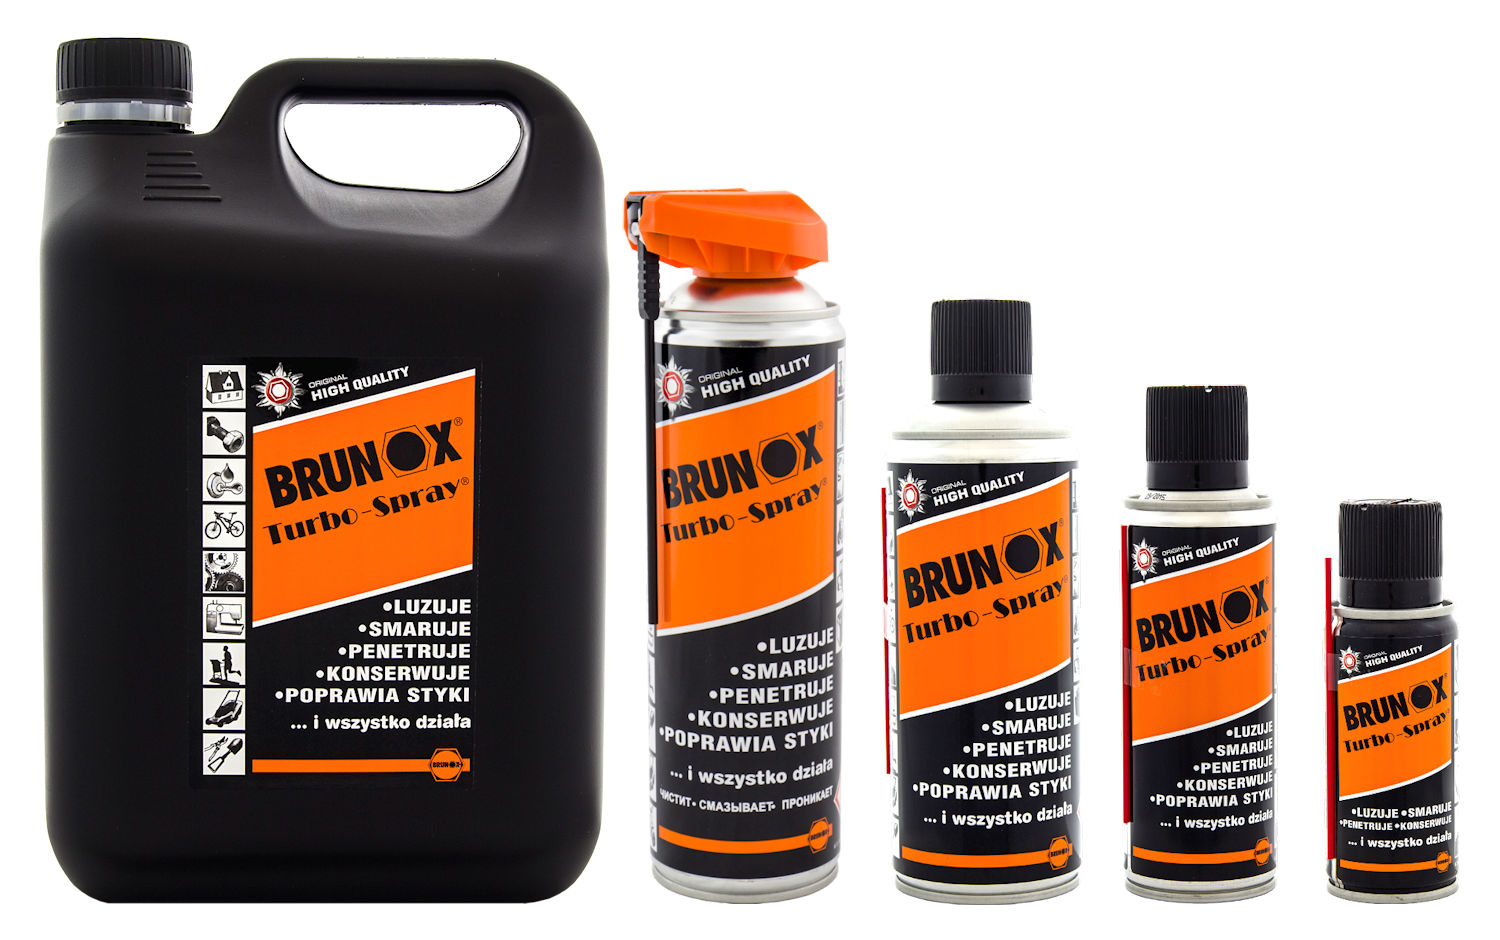 Brunox Turbo Spray